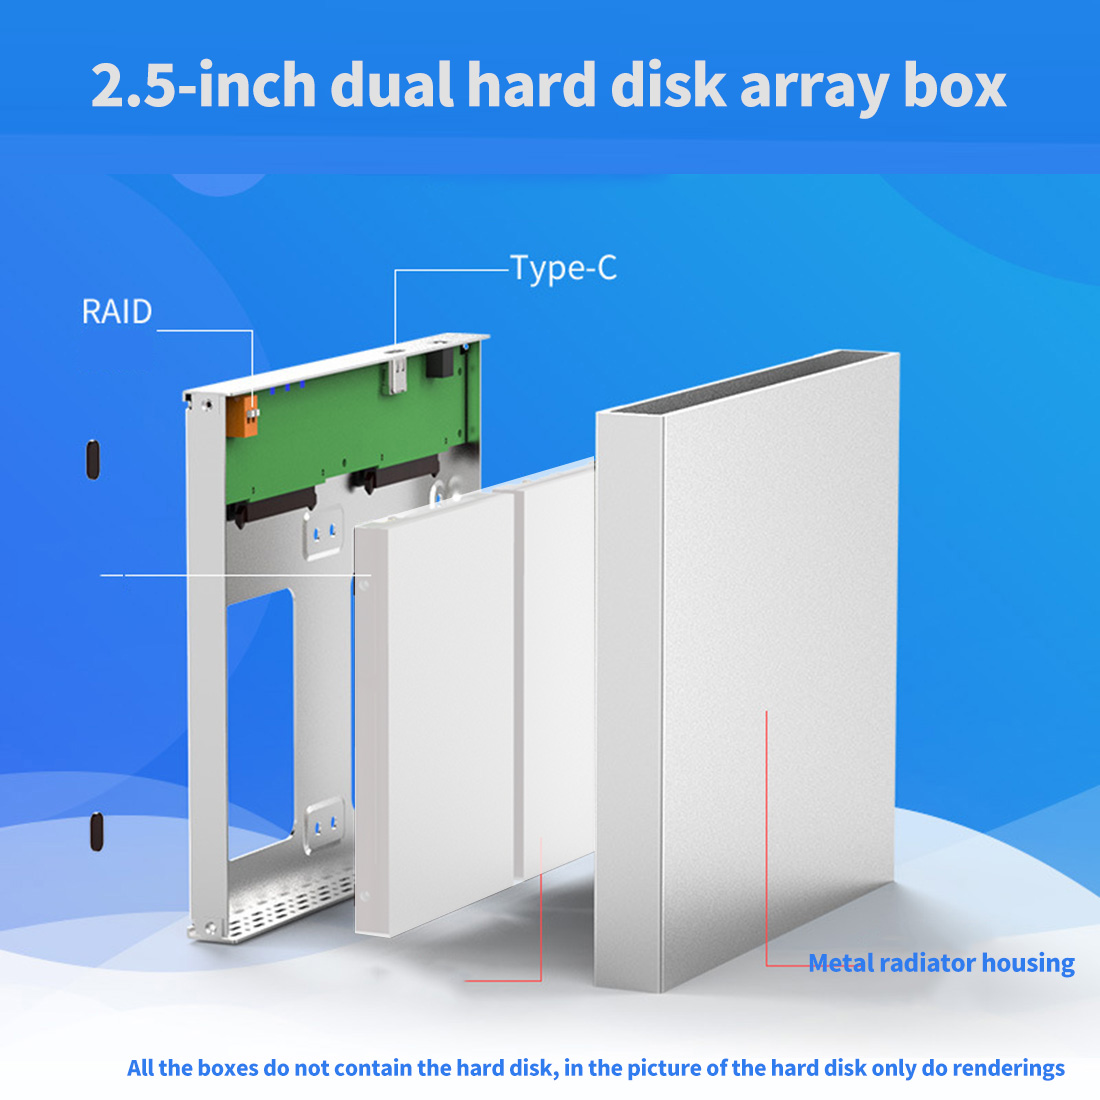 HDD <font><b>Enclosure</b></font> 2 Bay <font><b>2.5</b></font> inch 10Gbps USB 3.0 / Type C <font><b>Raid</b></font> 4 Modes for Windows Mac Linux 20TB External SATA Hard Drive Array Box image